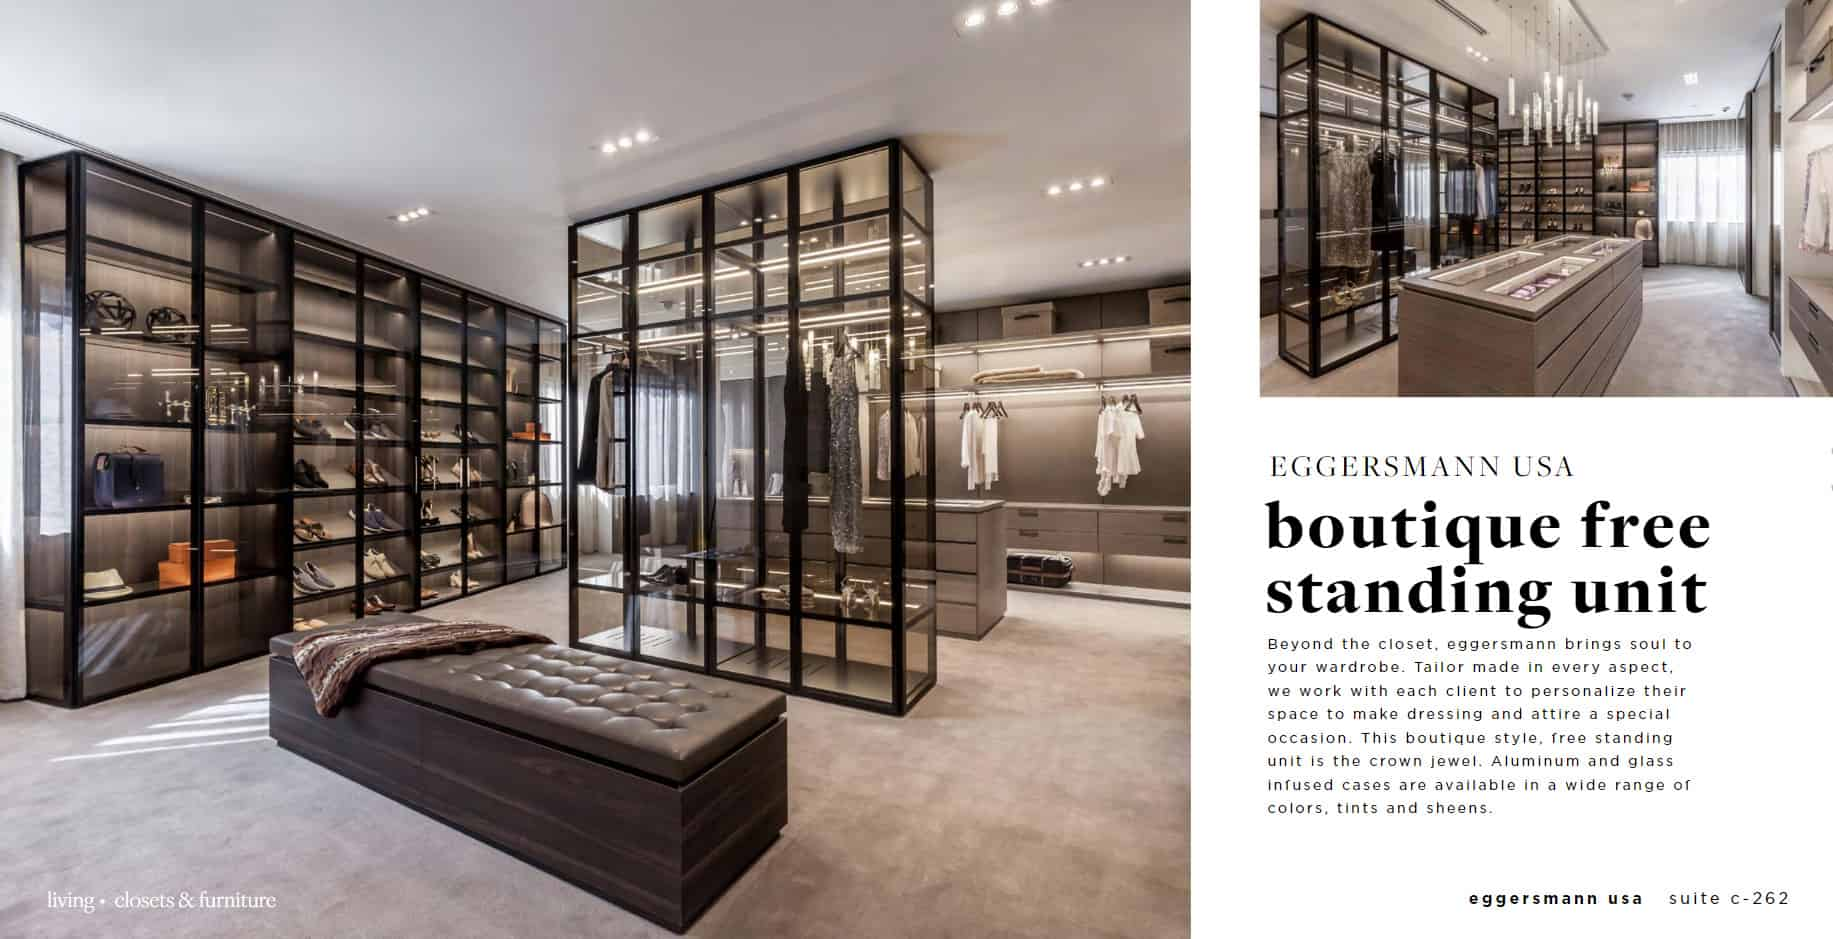 eggersmann closets featured in south florida's design center of the americas' spring look-book 2019